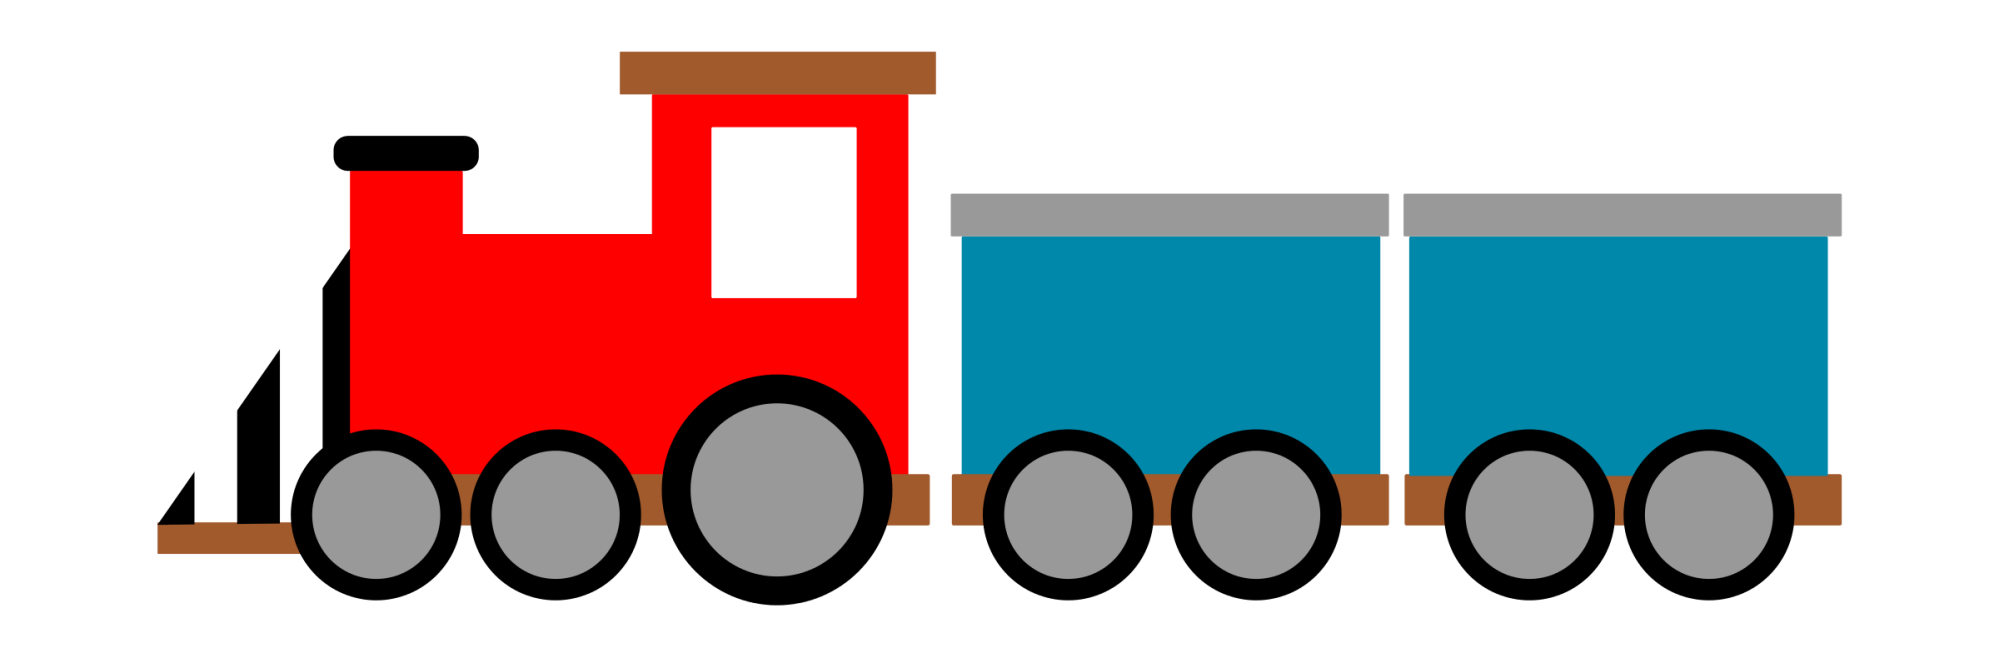 hight resolution of train image train train clipart